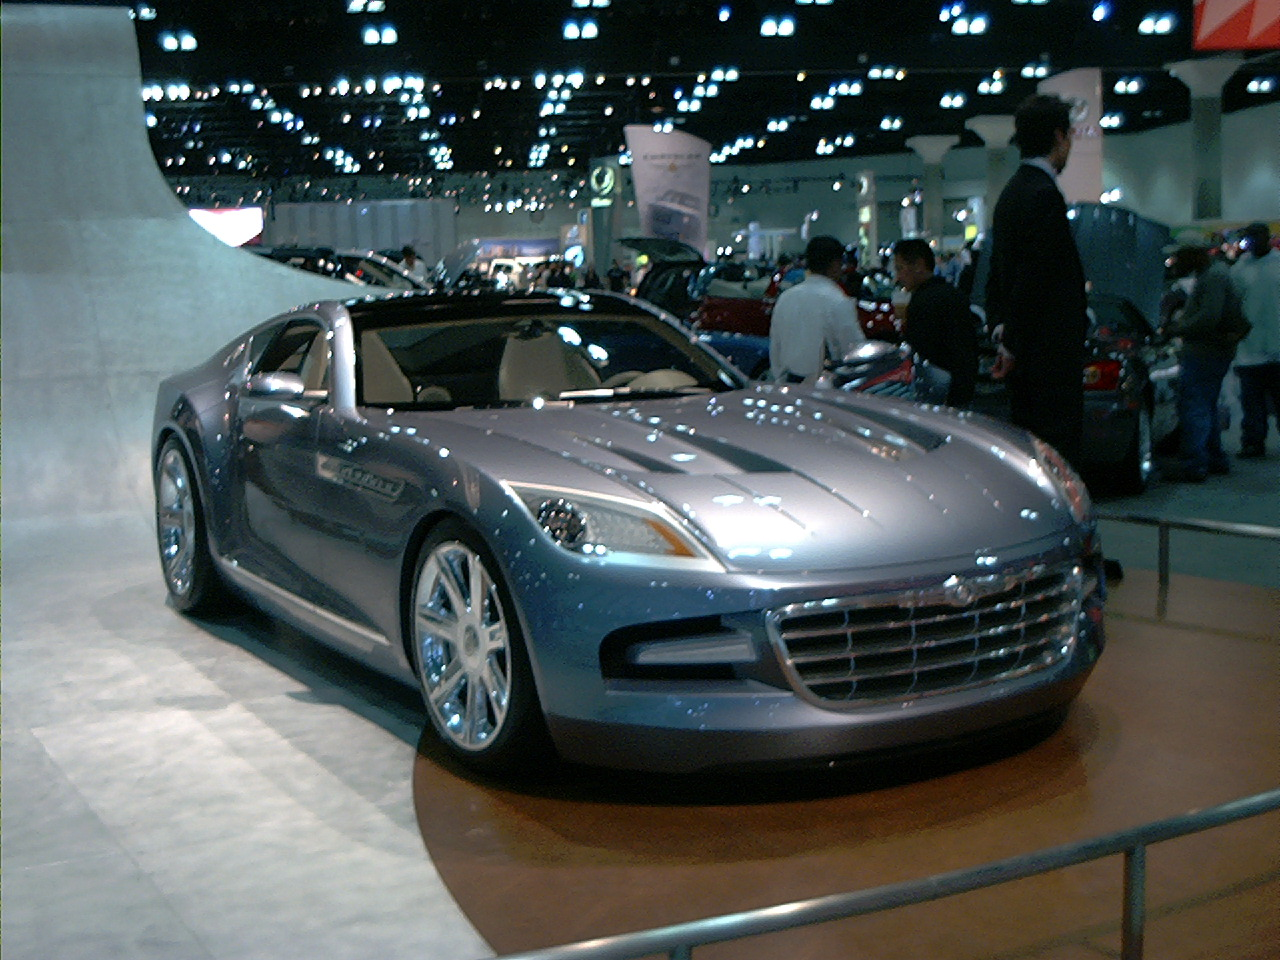 Aston Martin One-77 Image